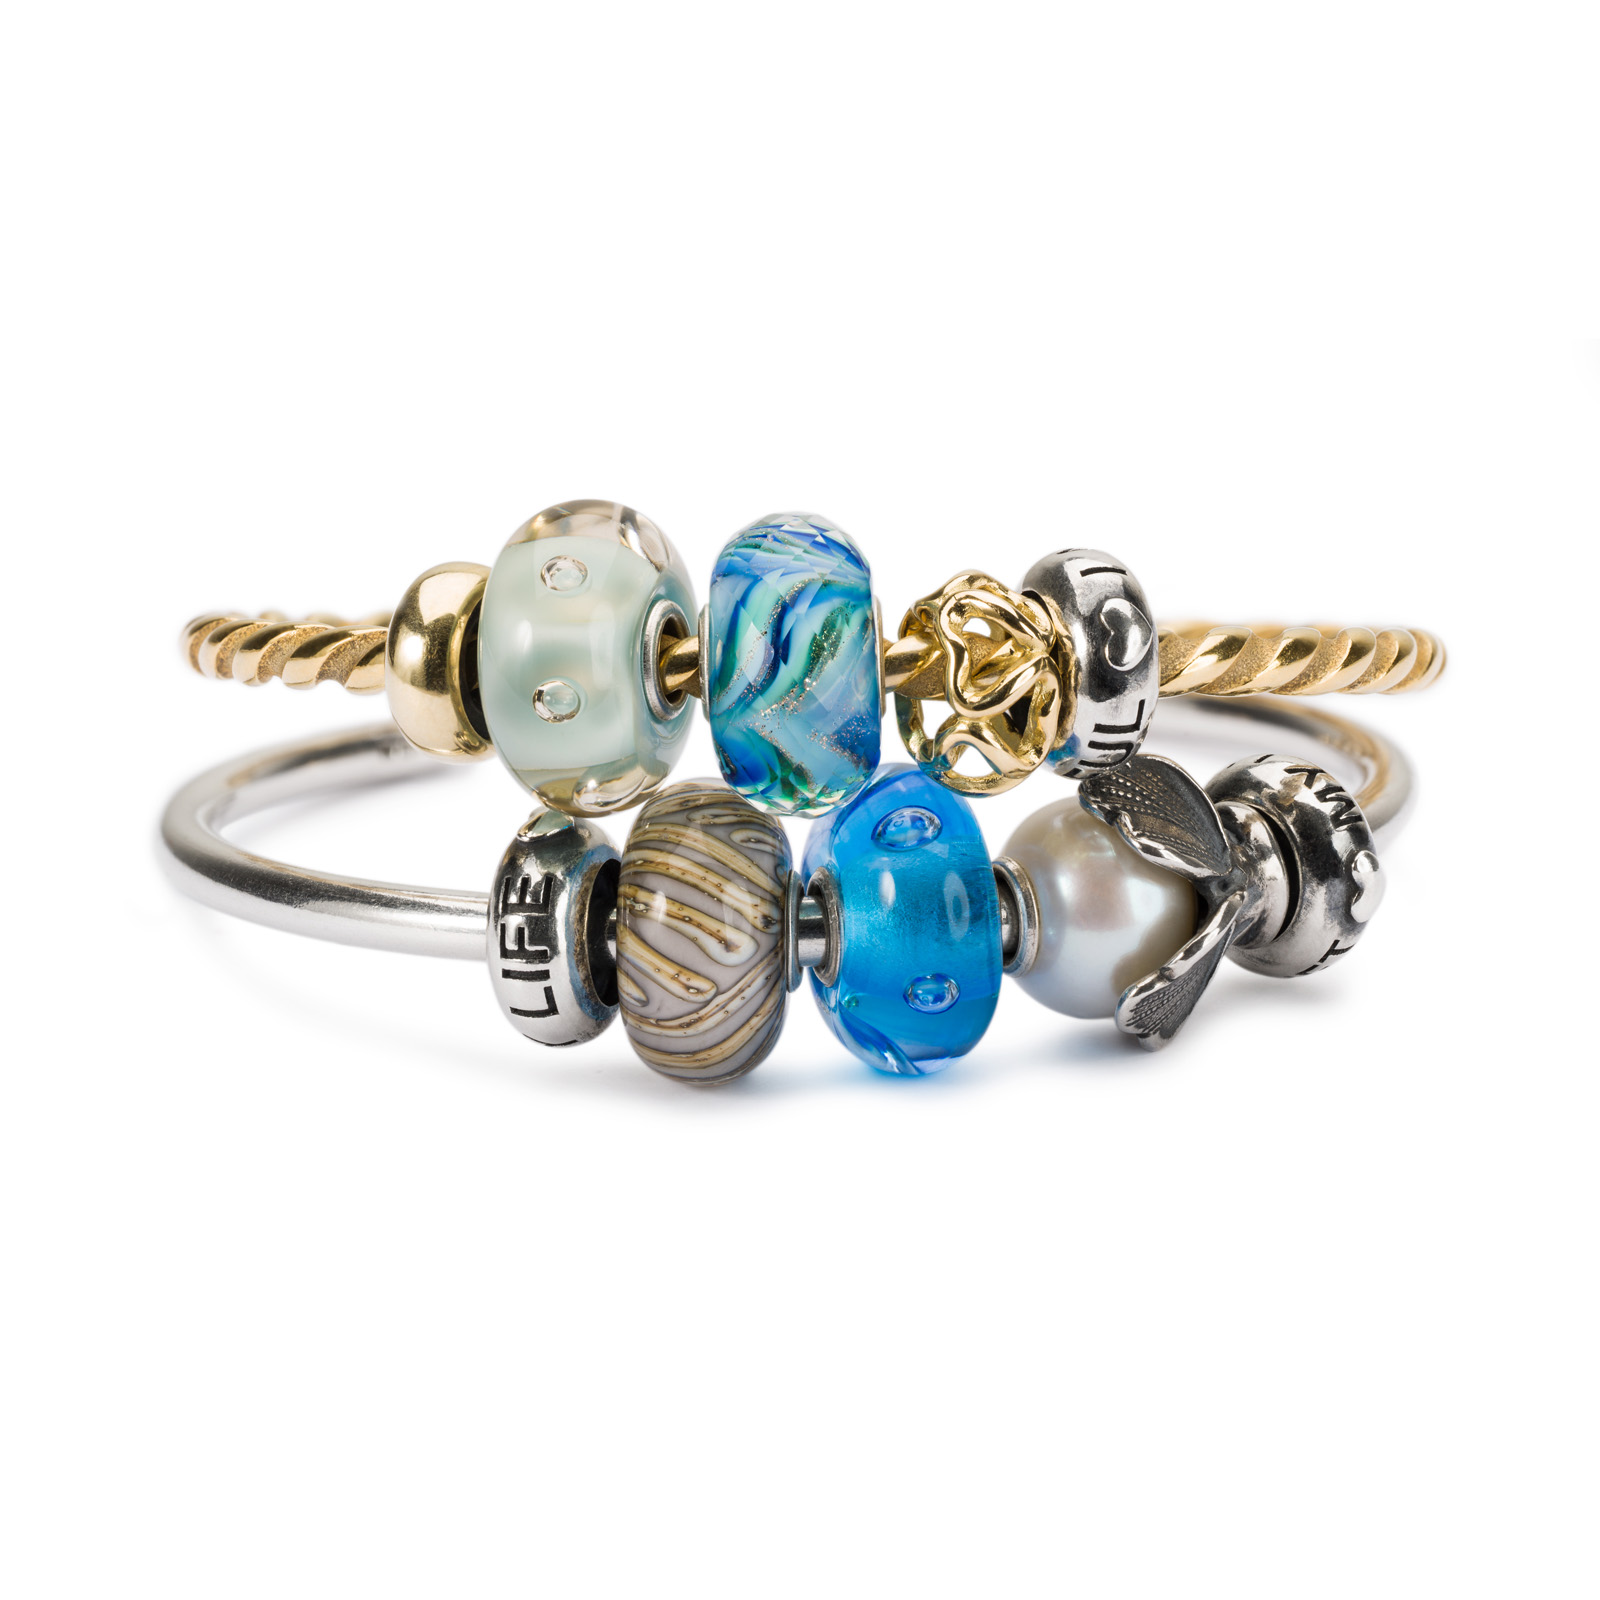 Trollbeads - New Wisdom Bangle Stack